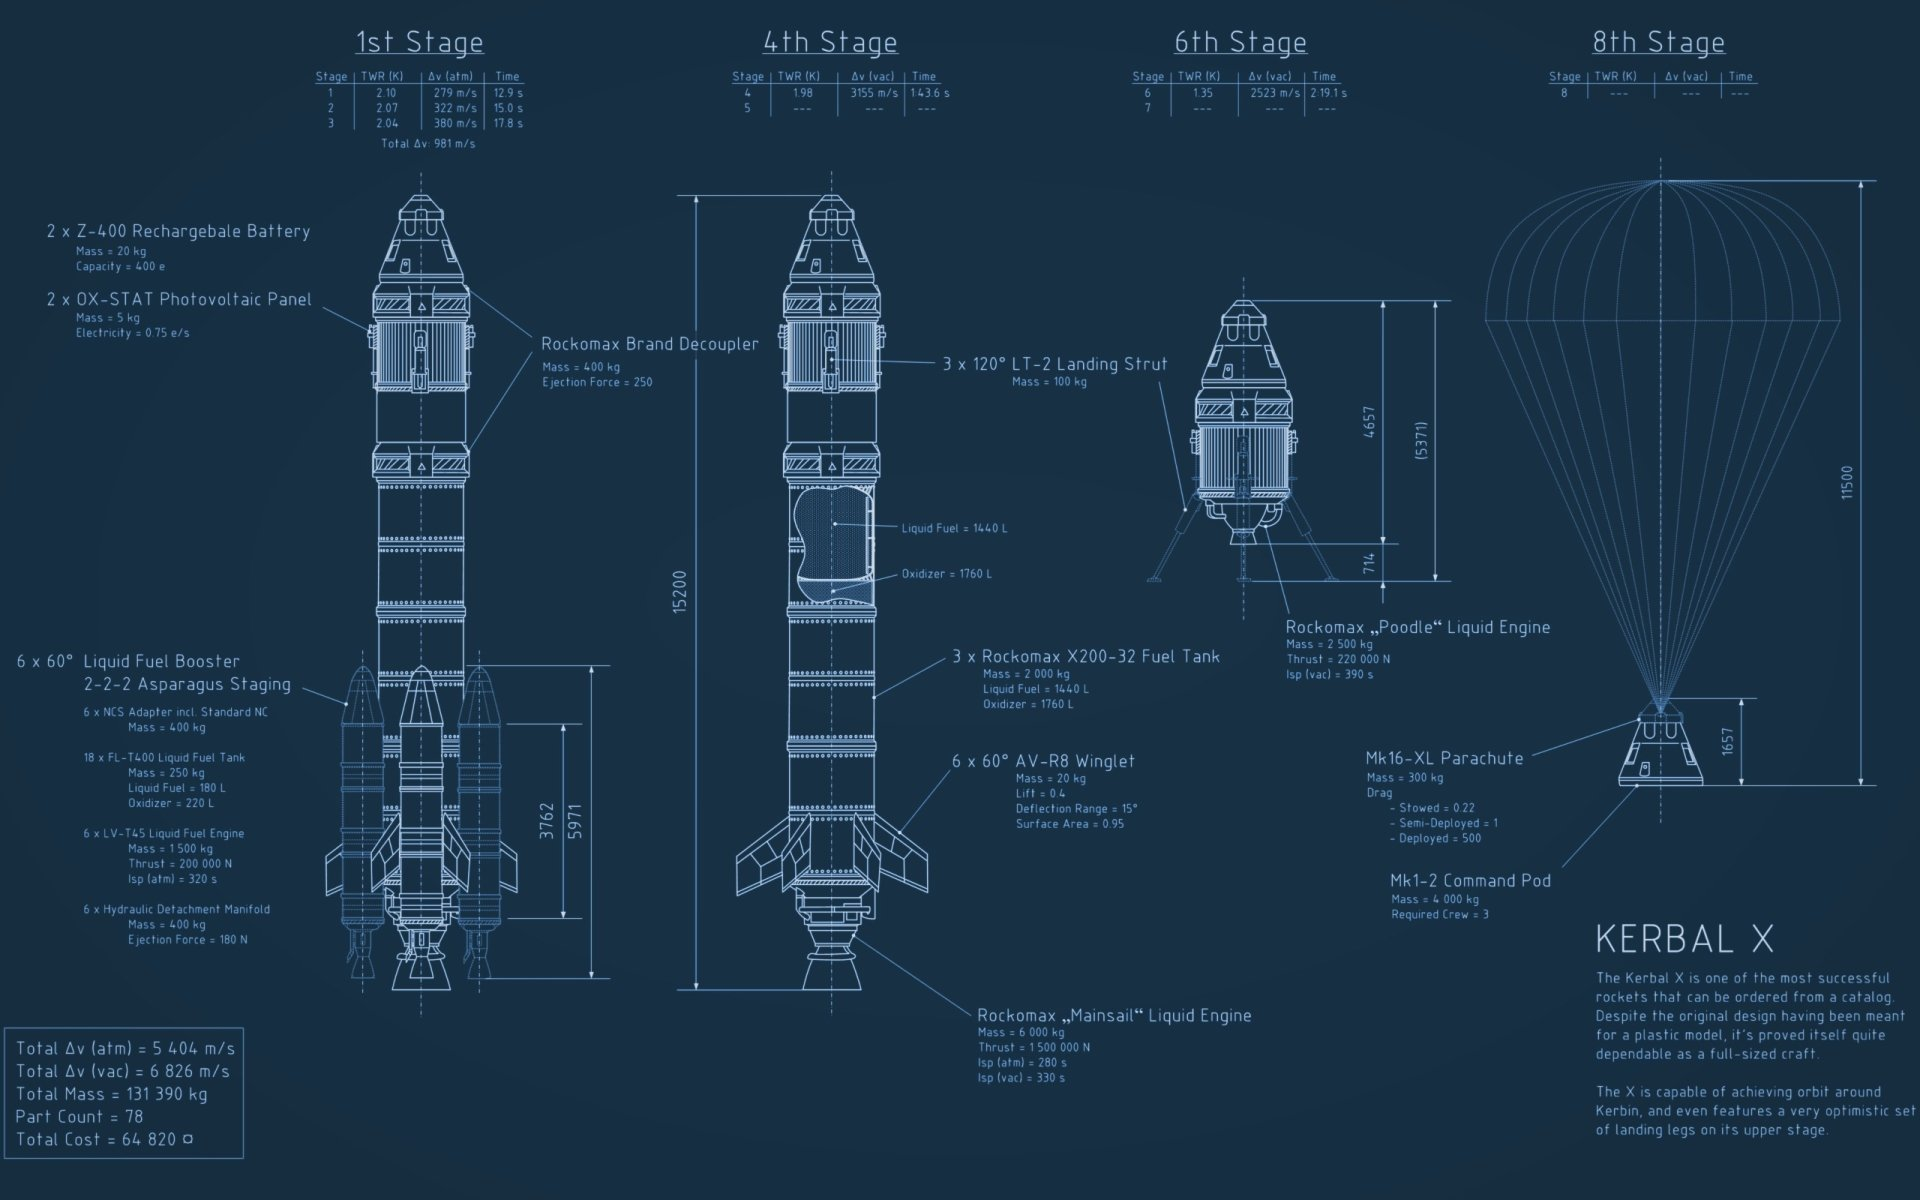 技术 - Schematic  Rocket 太空 宇宙飞船 壁纸